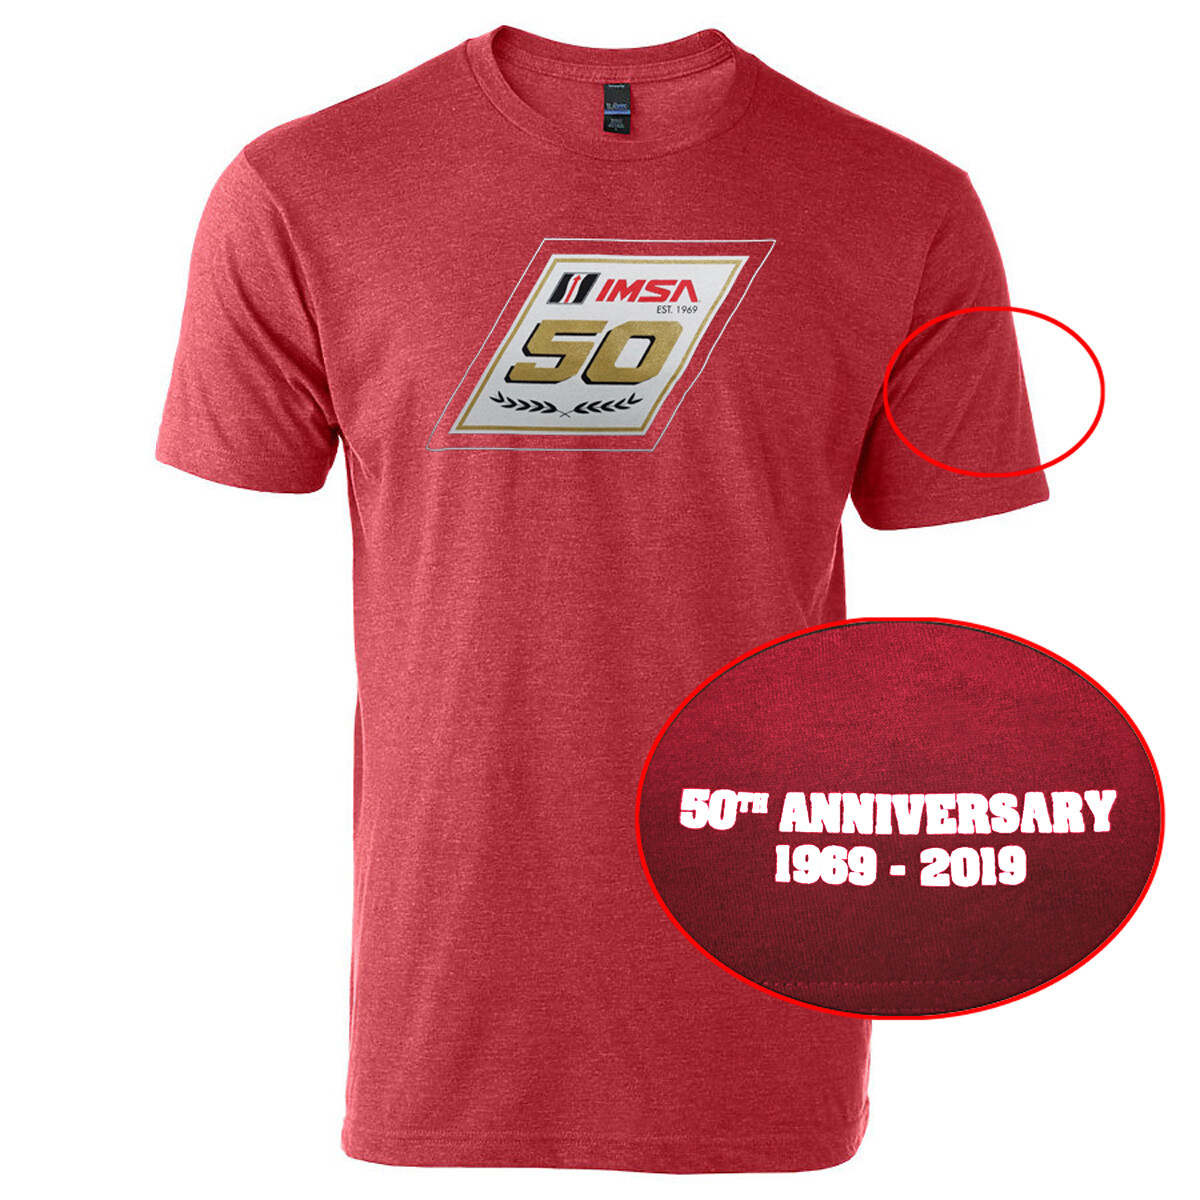 IMSA 50th Anniversary Metallic Gold Logo Tee- Heather Red